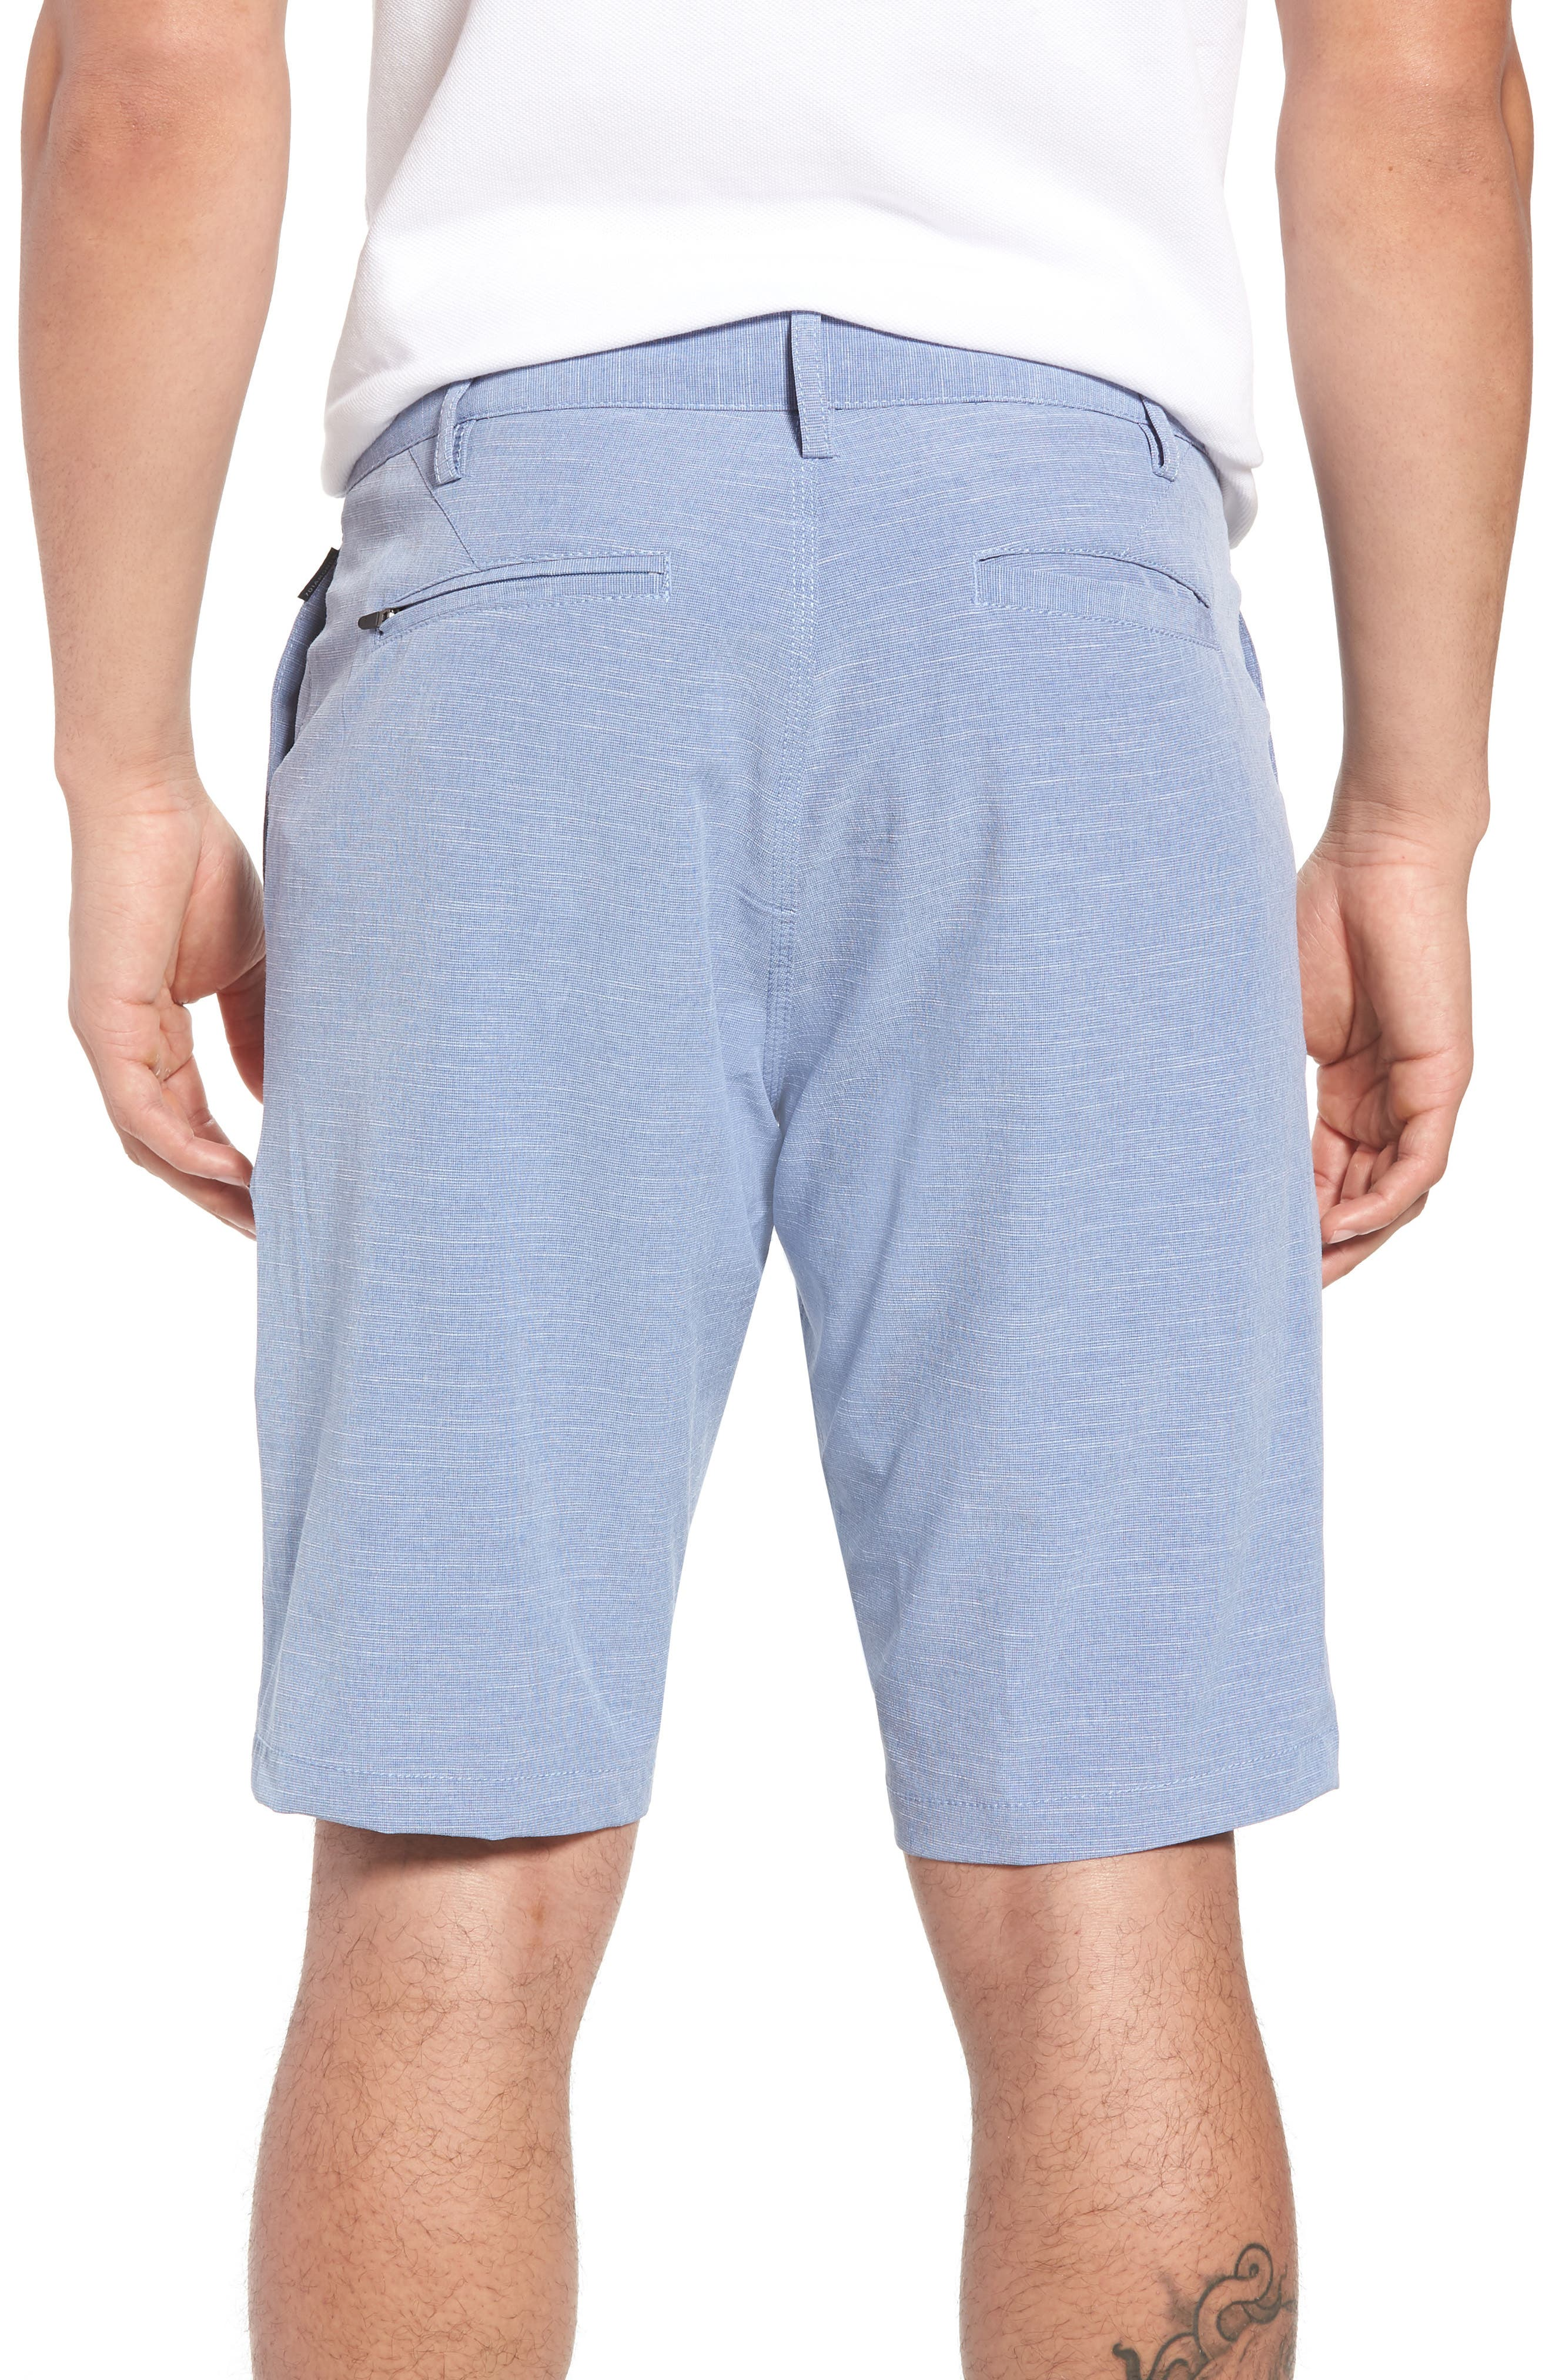 Existence Stretch Shorts,                             Alternate thumbnail 7, color,